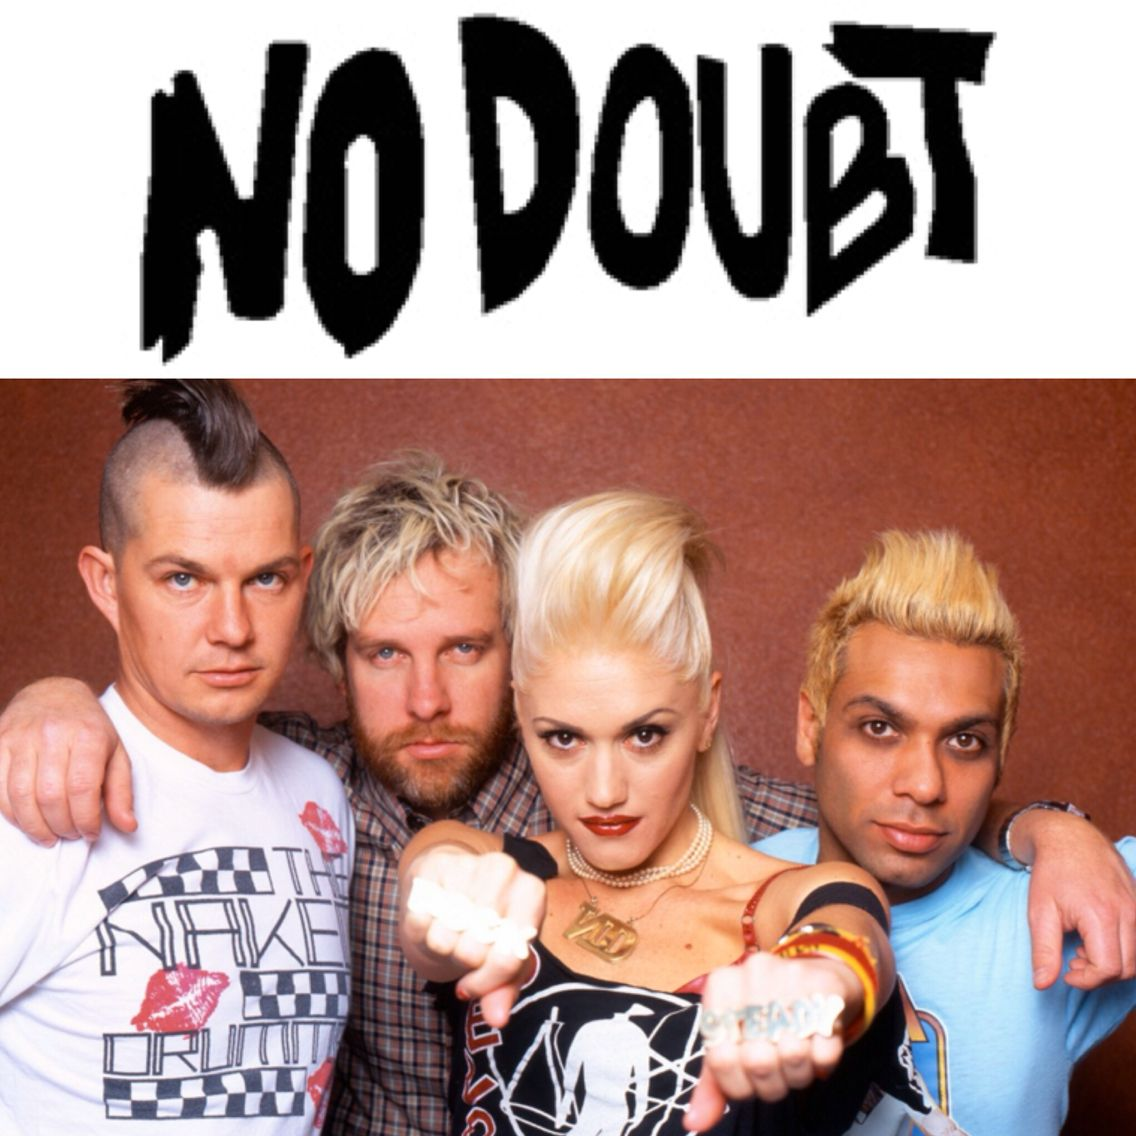 1986, No Doubt, Anaheim California US #NoDoubt #Anaheim (L3526)